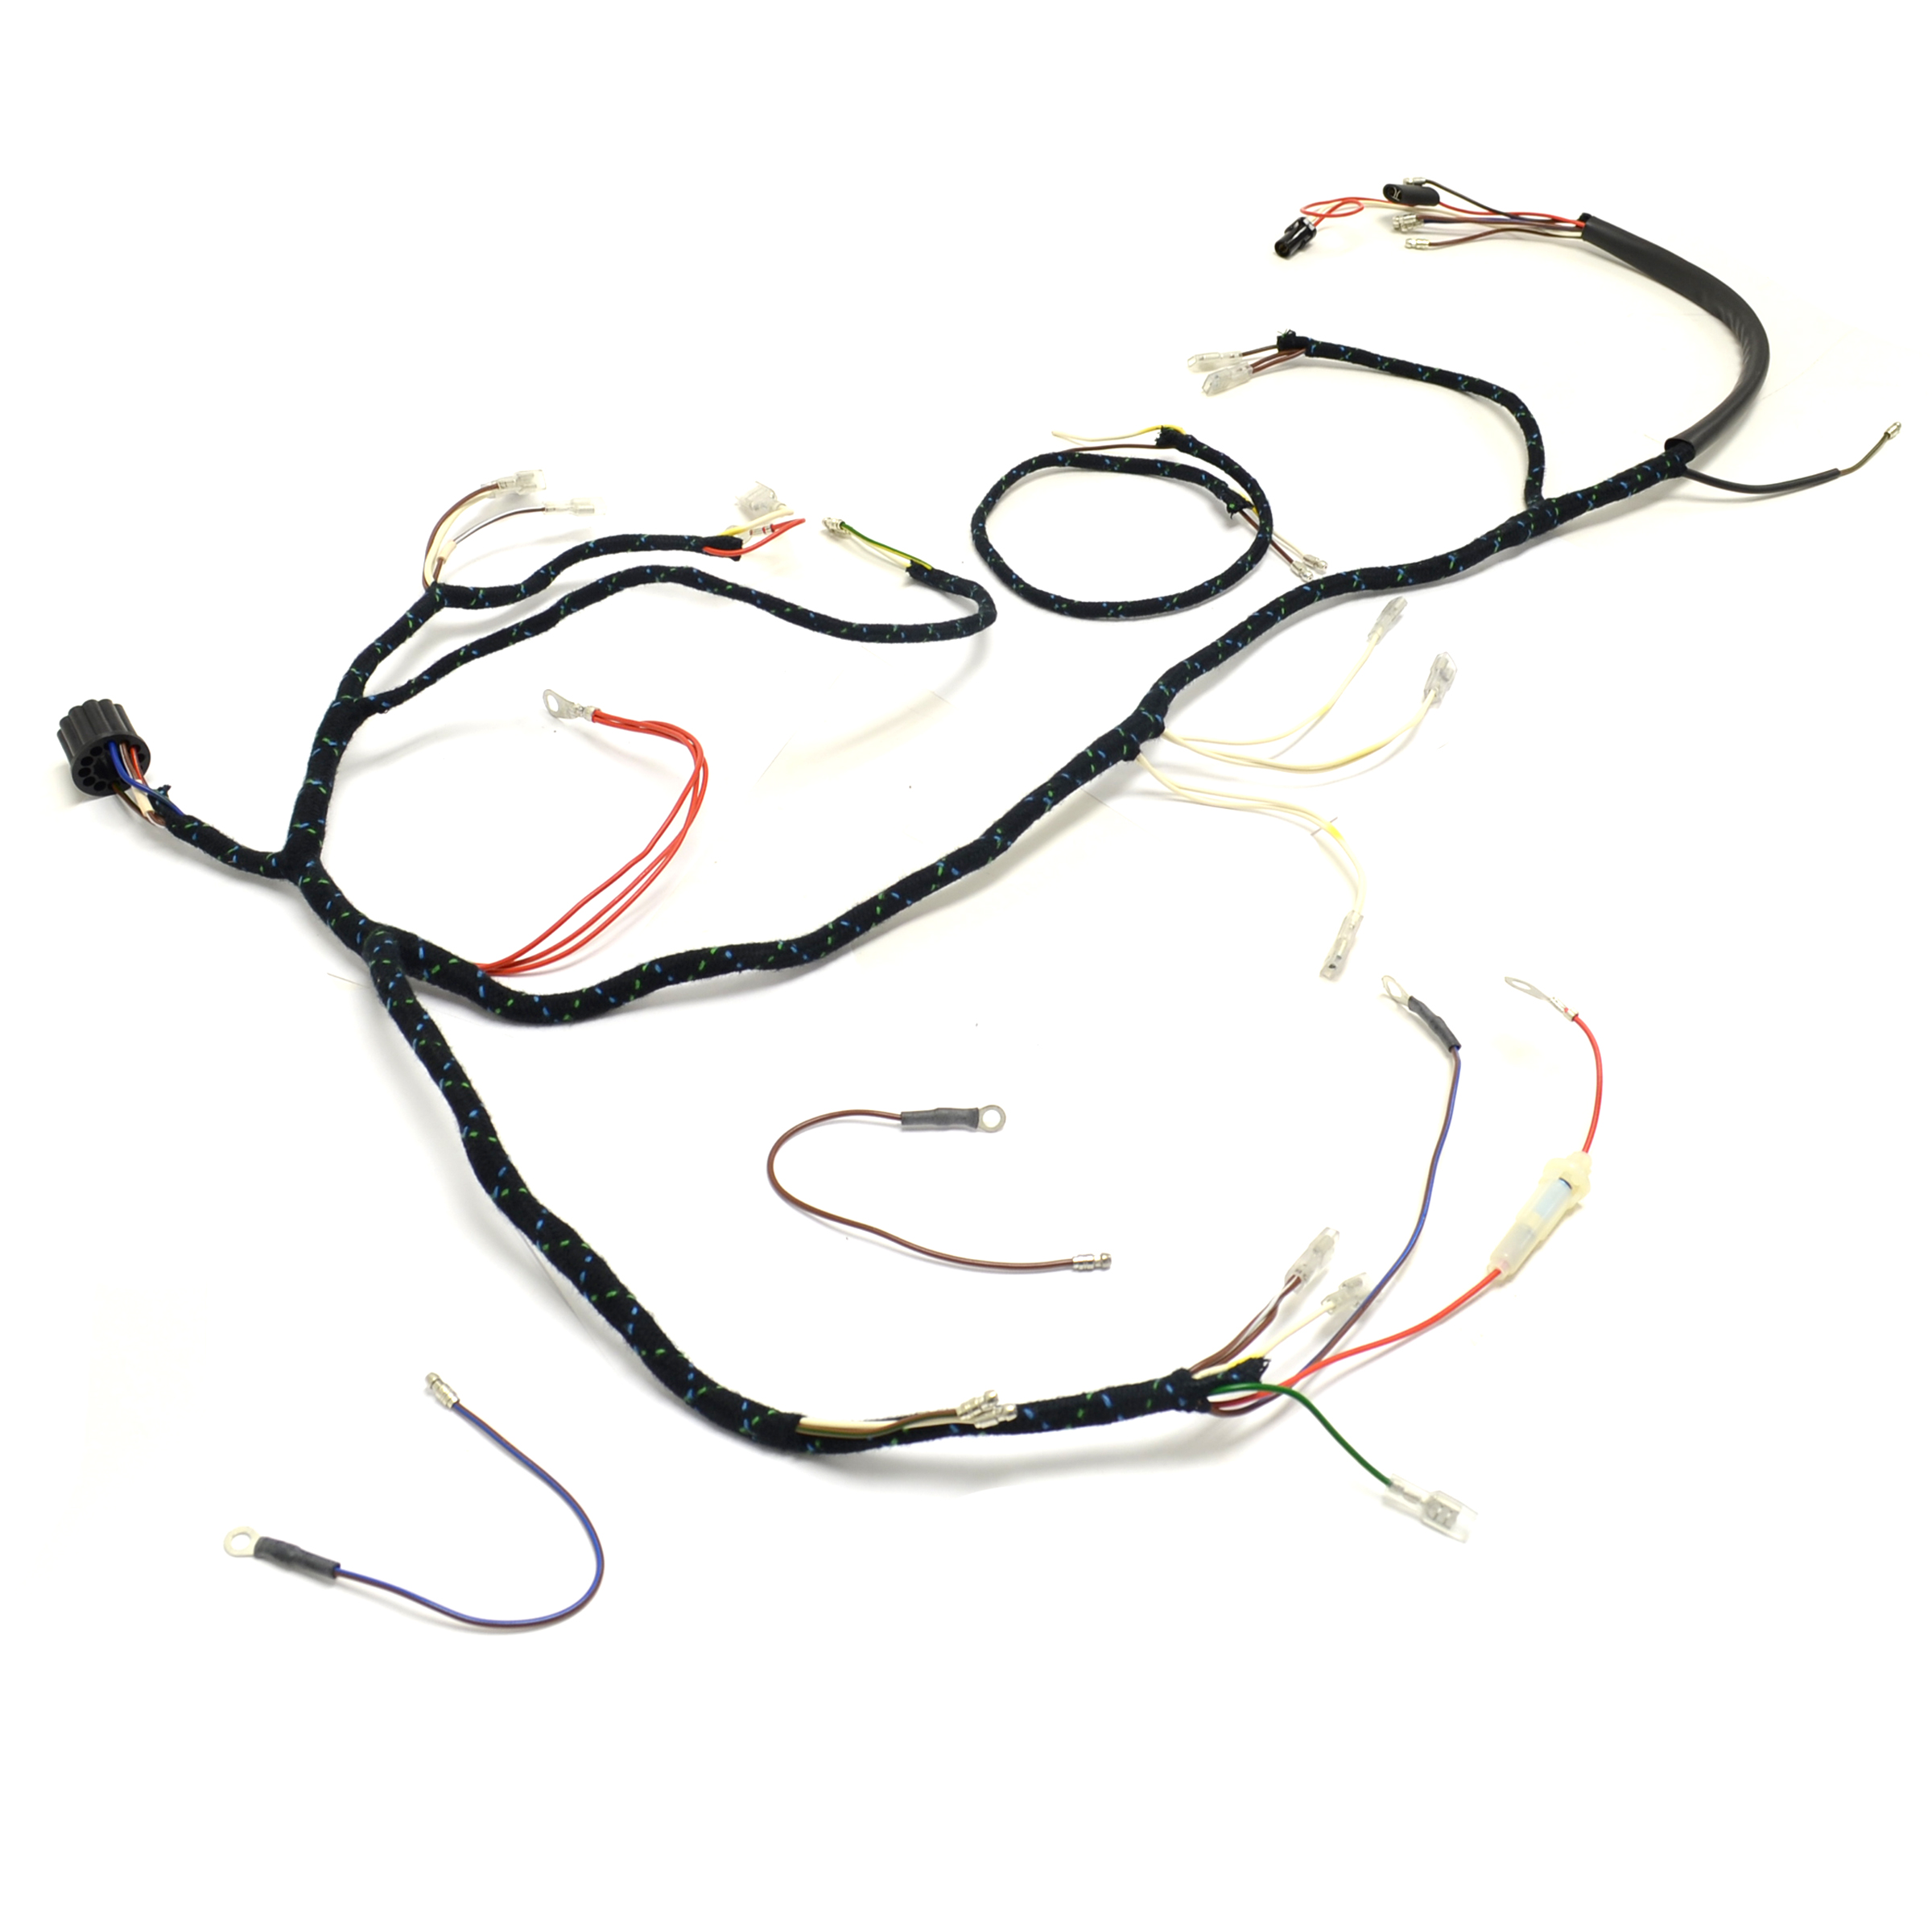 Triumph T90 T100 T120 Tr6 Uk Made 12 Volt Wiring Harness H023